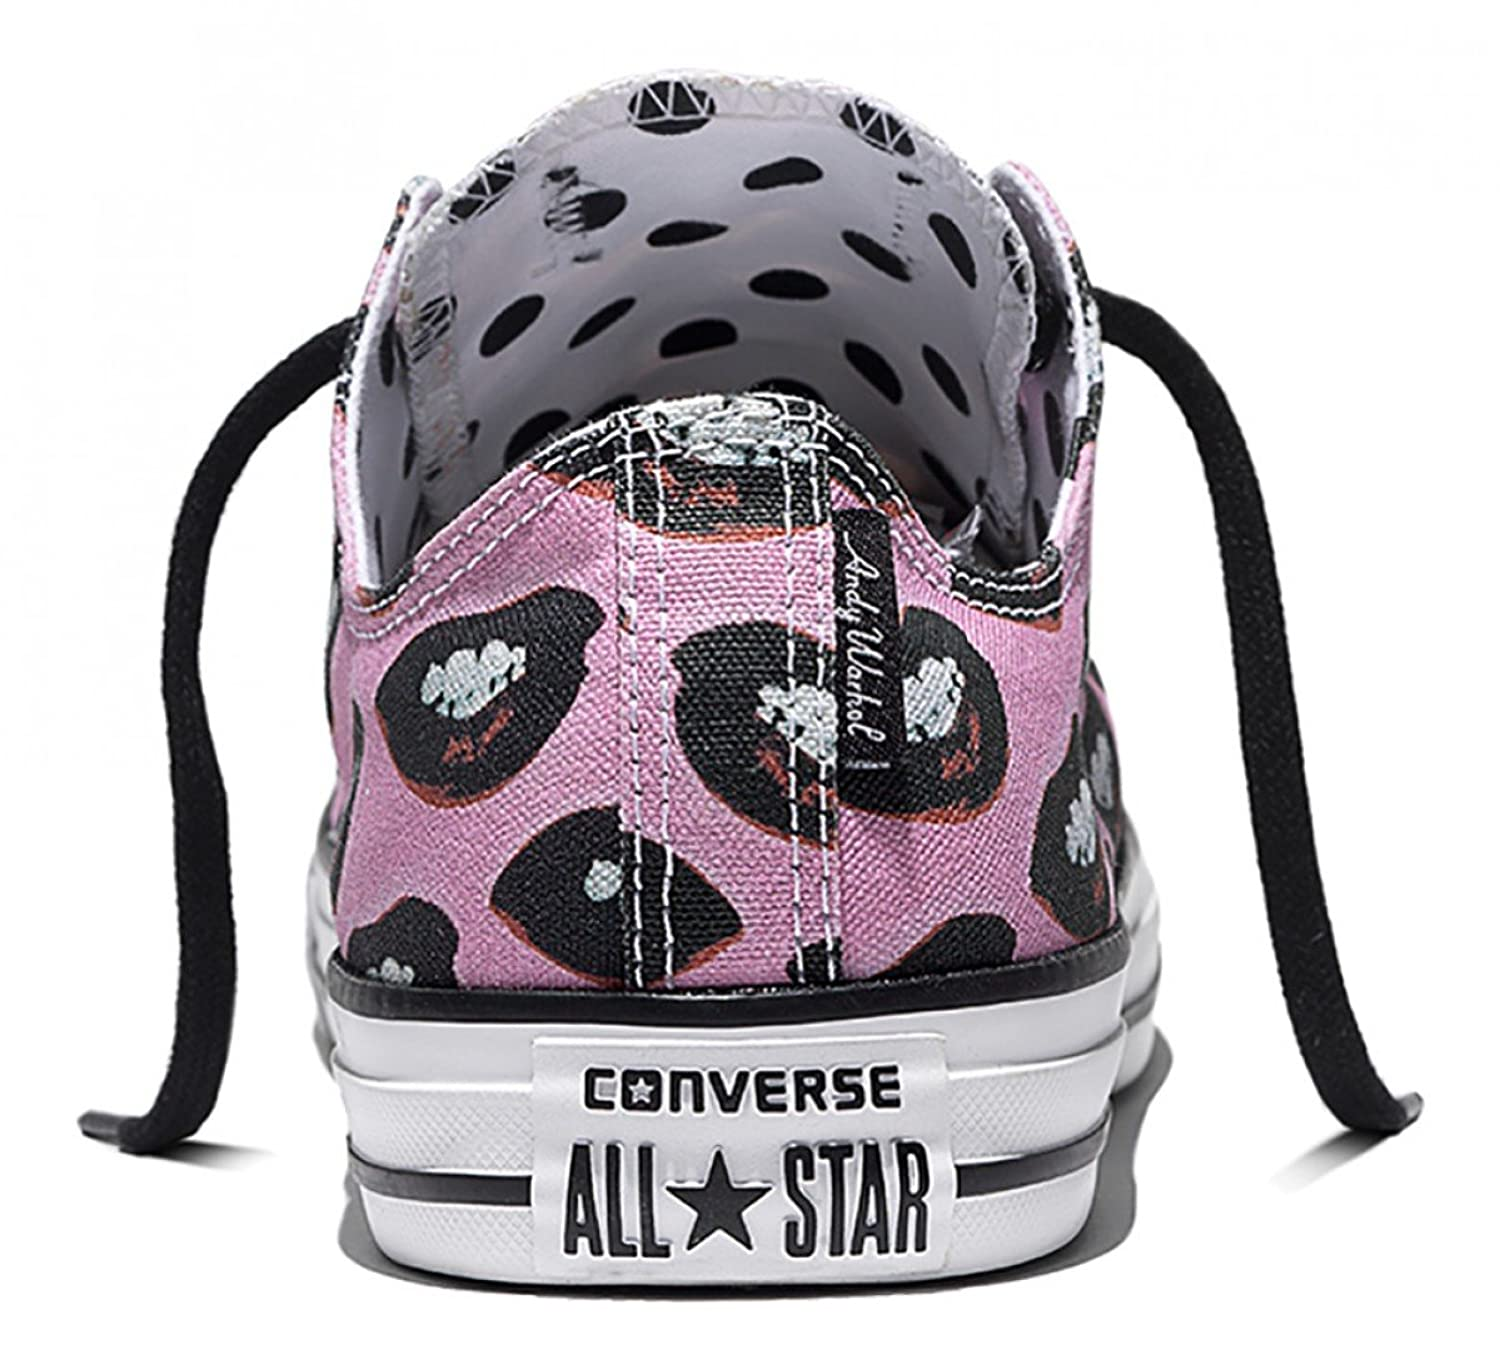 8d3254937b947e Converse Andy Warhol Edition Marilyn Monroe Ox Lo Top Chuck Taylor  Sneakers  Amazon.co.uk  Shoes   Bags